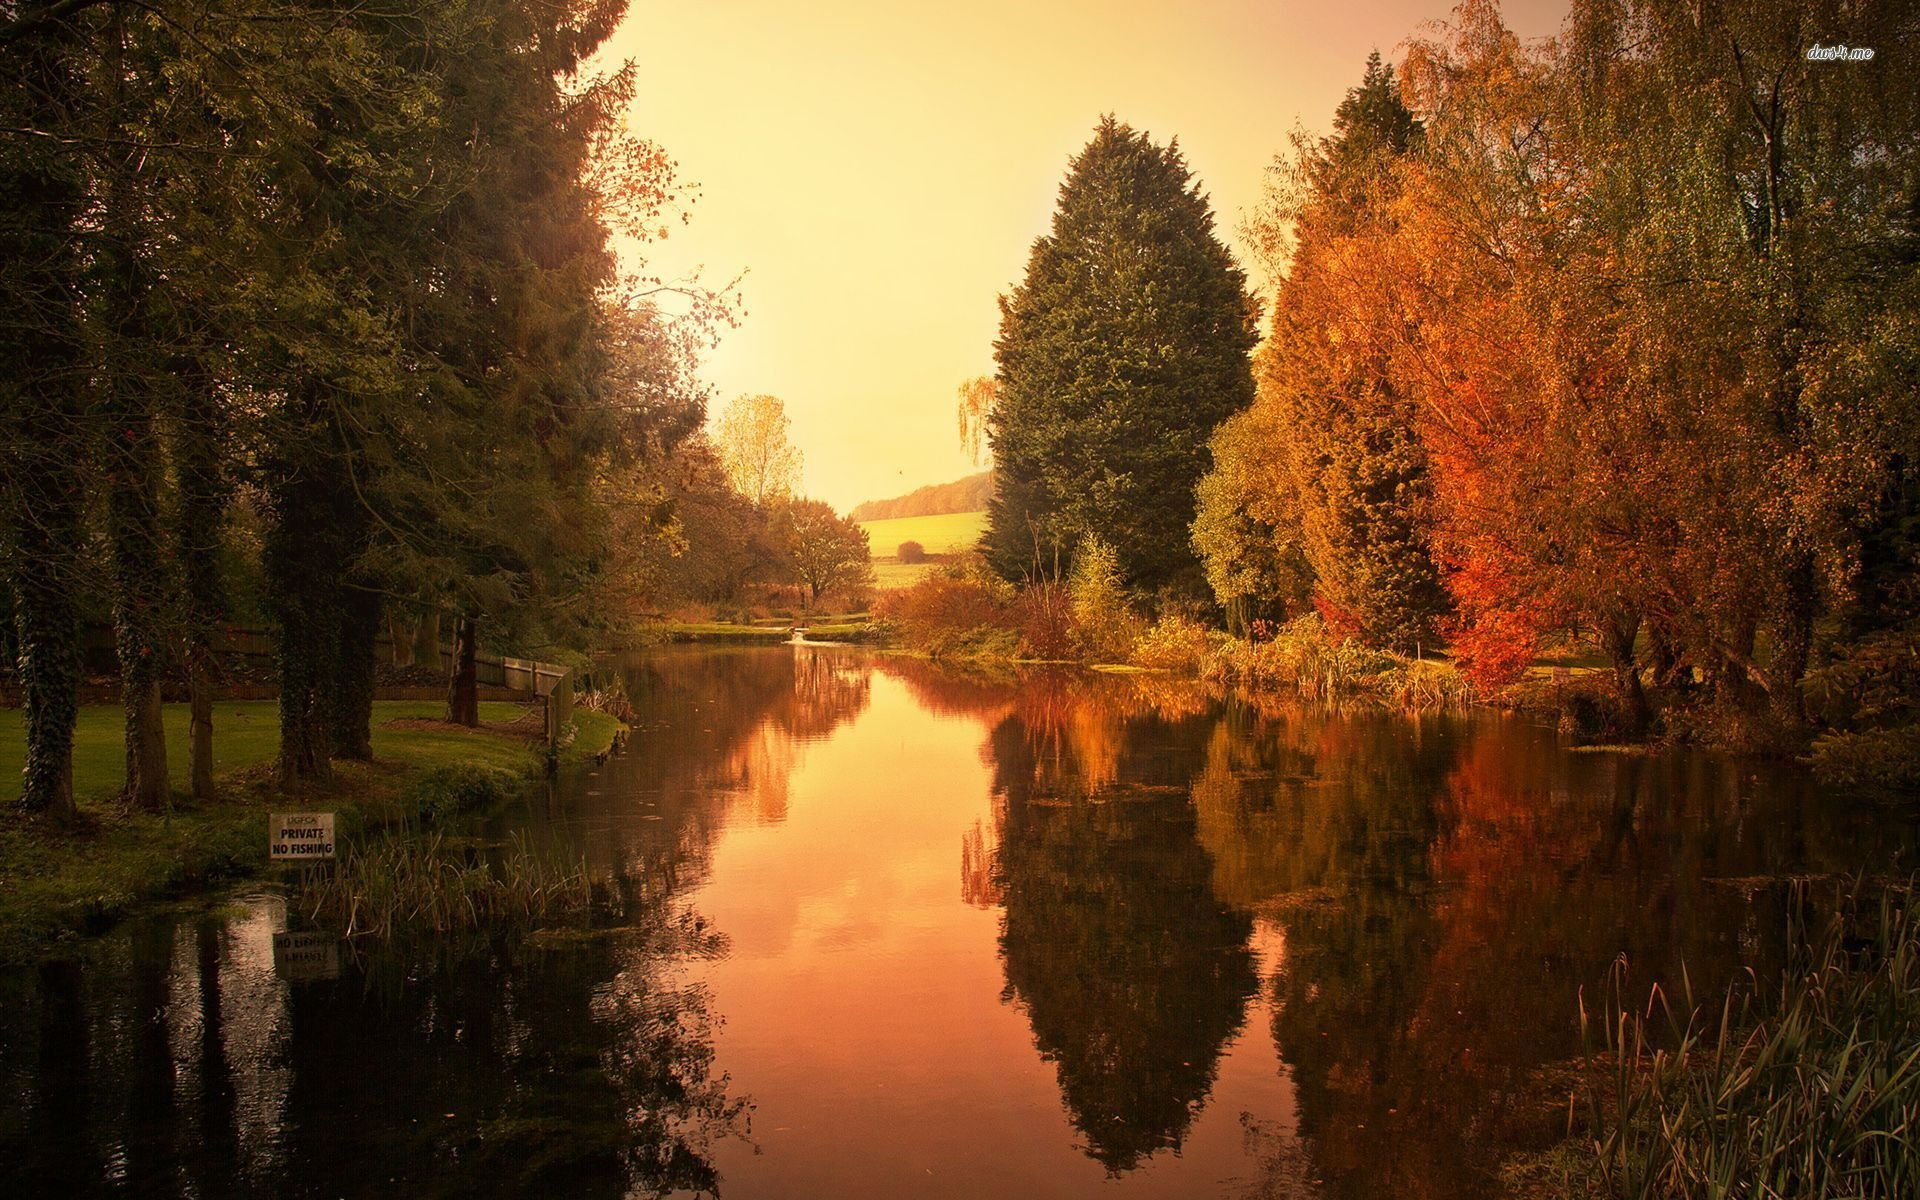 Wallpaper Backgrounds Fall 23065 Fishing Pond Reflecting Autumn Trees 1920x1200